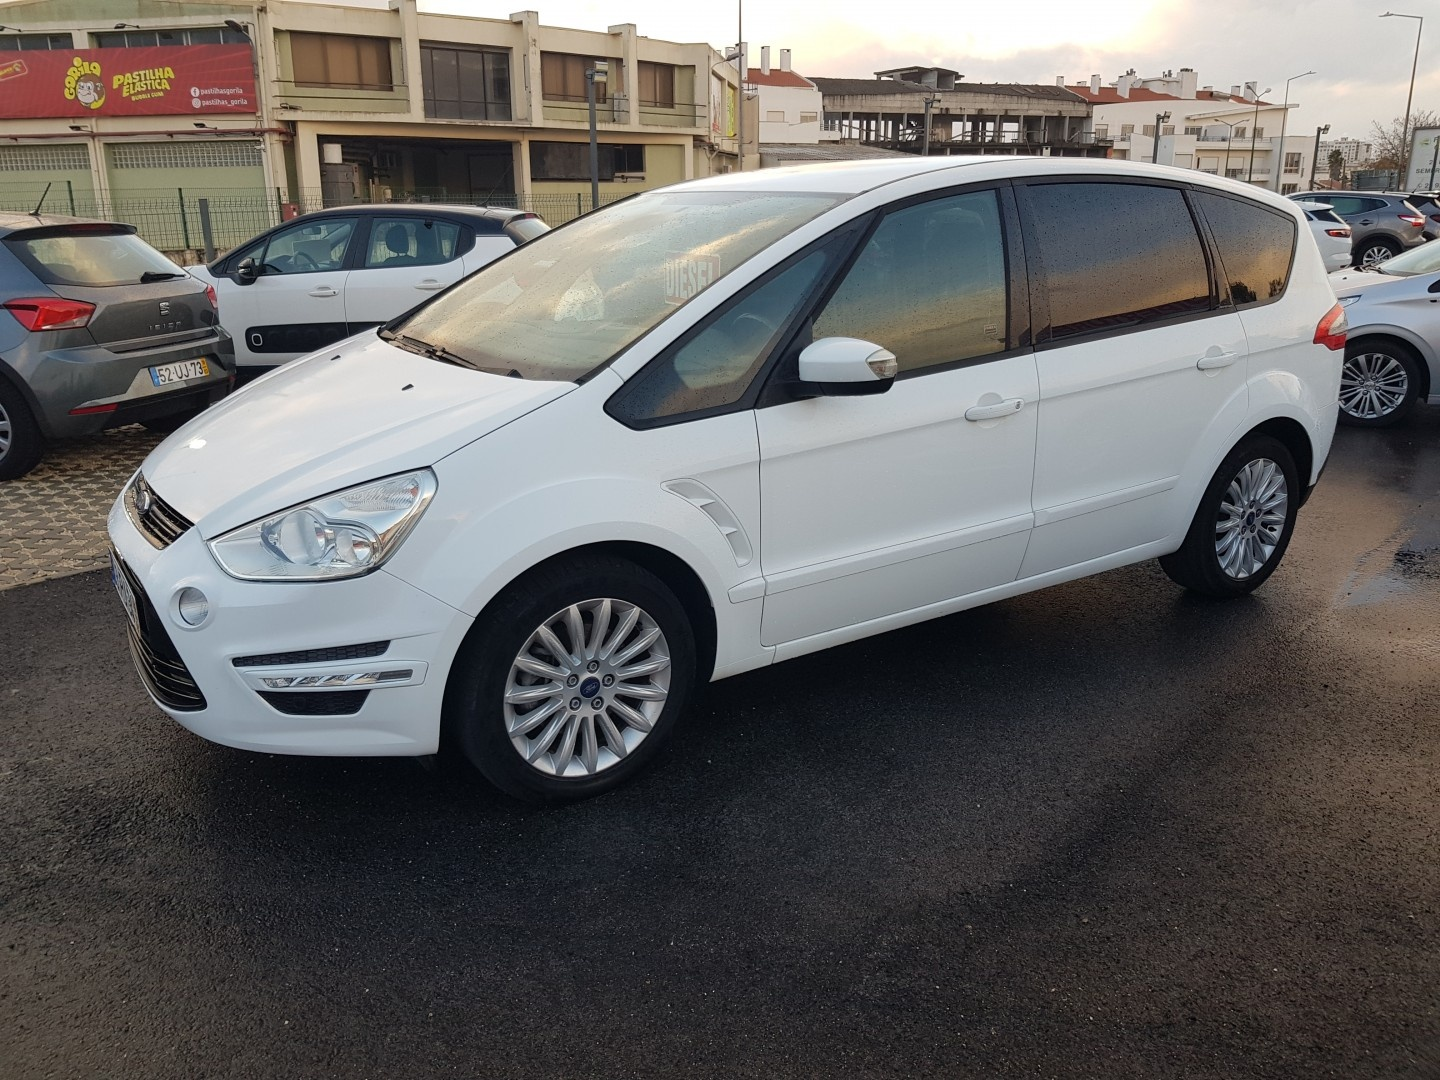 Ford S-Max 1.6tdci